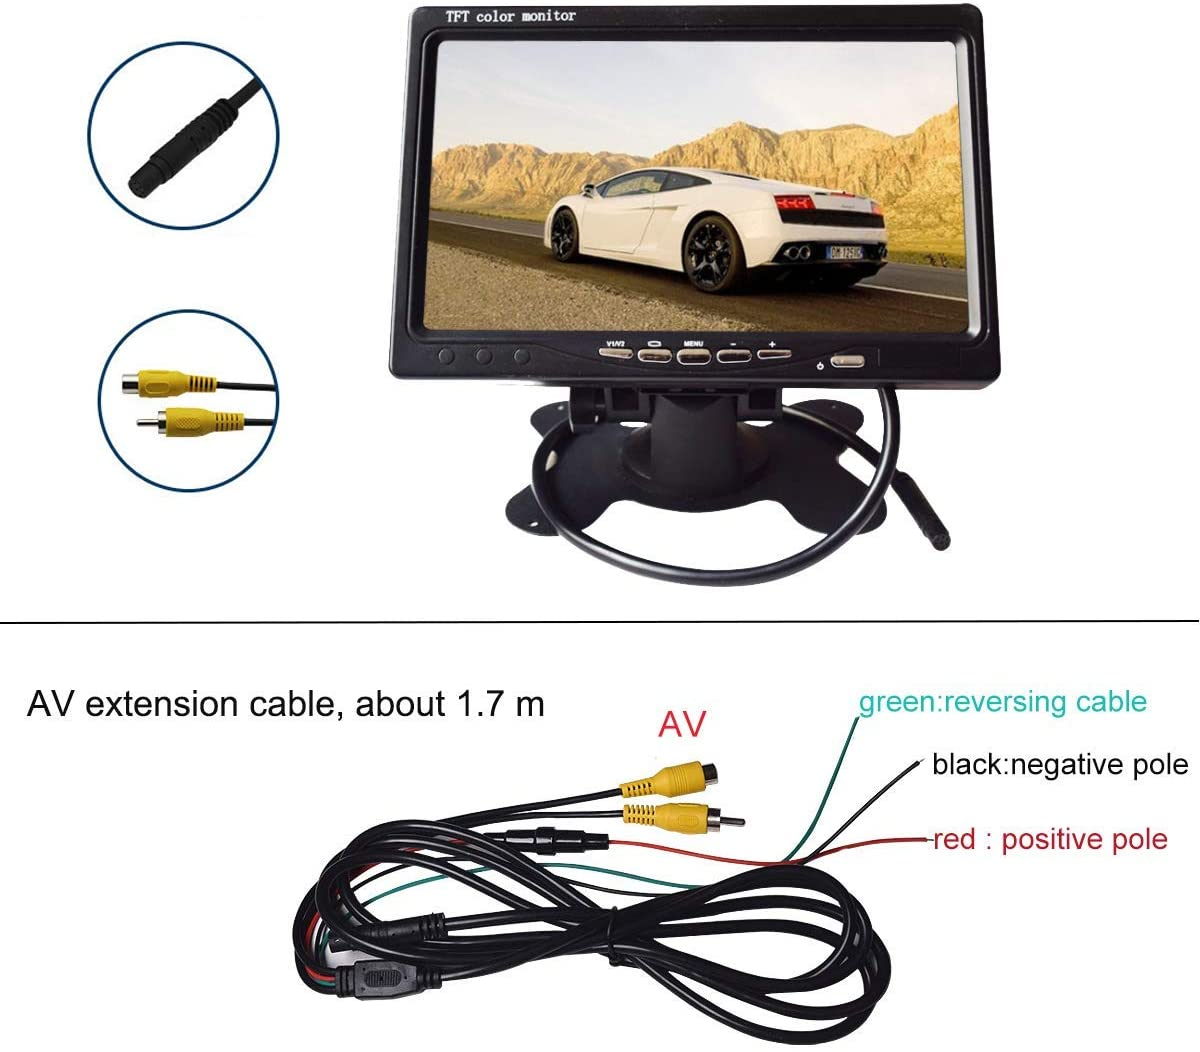 Camecho Rear View Camera AV Cable Without Color Change Vehicle DC12V 24V Waterproof Backup Camera for Truck//Trailer//Van//Camper